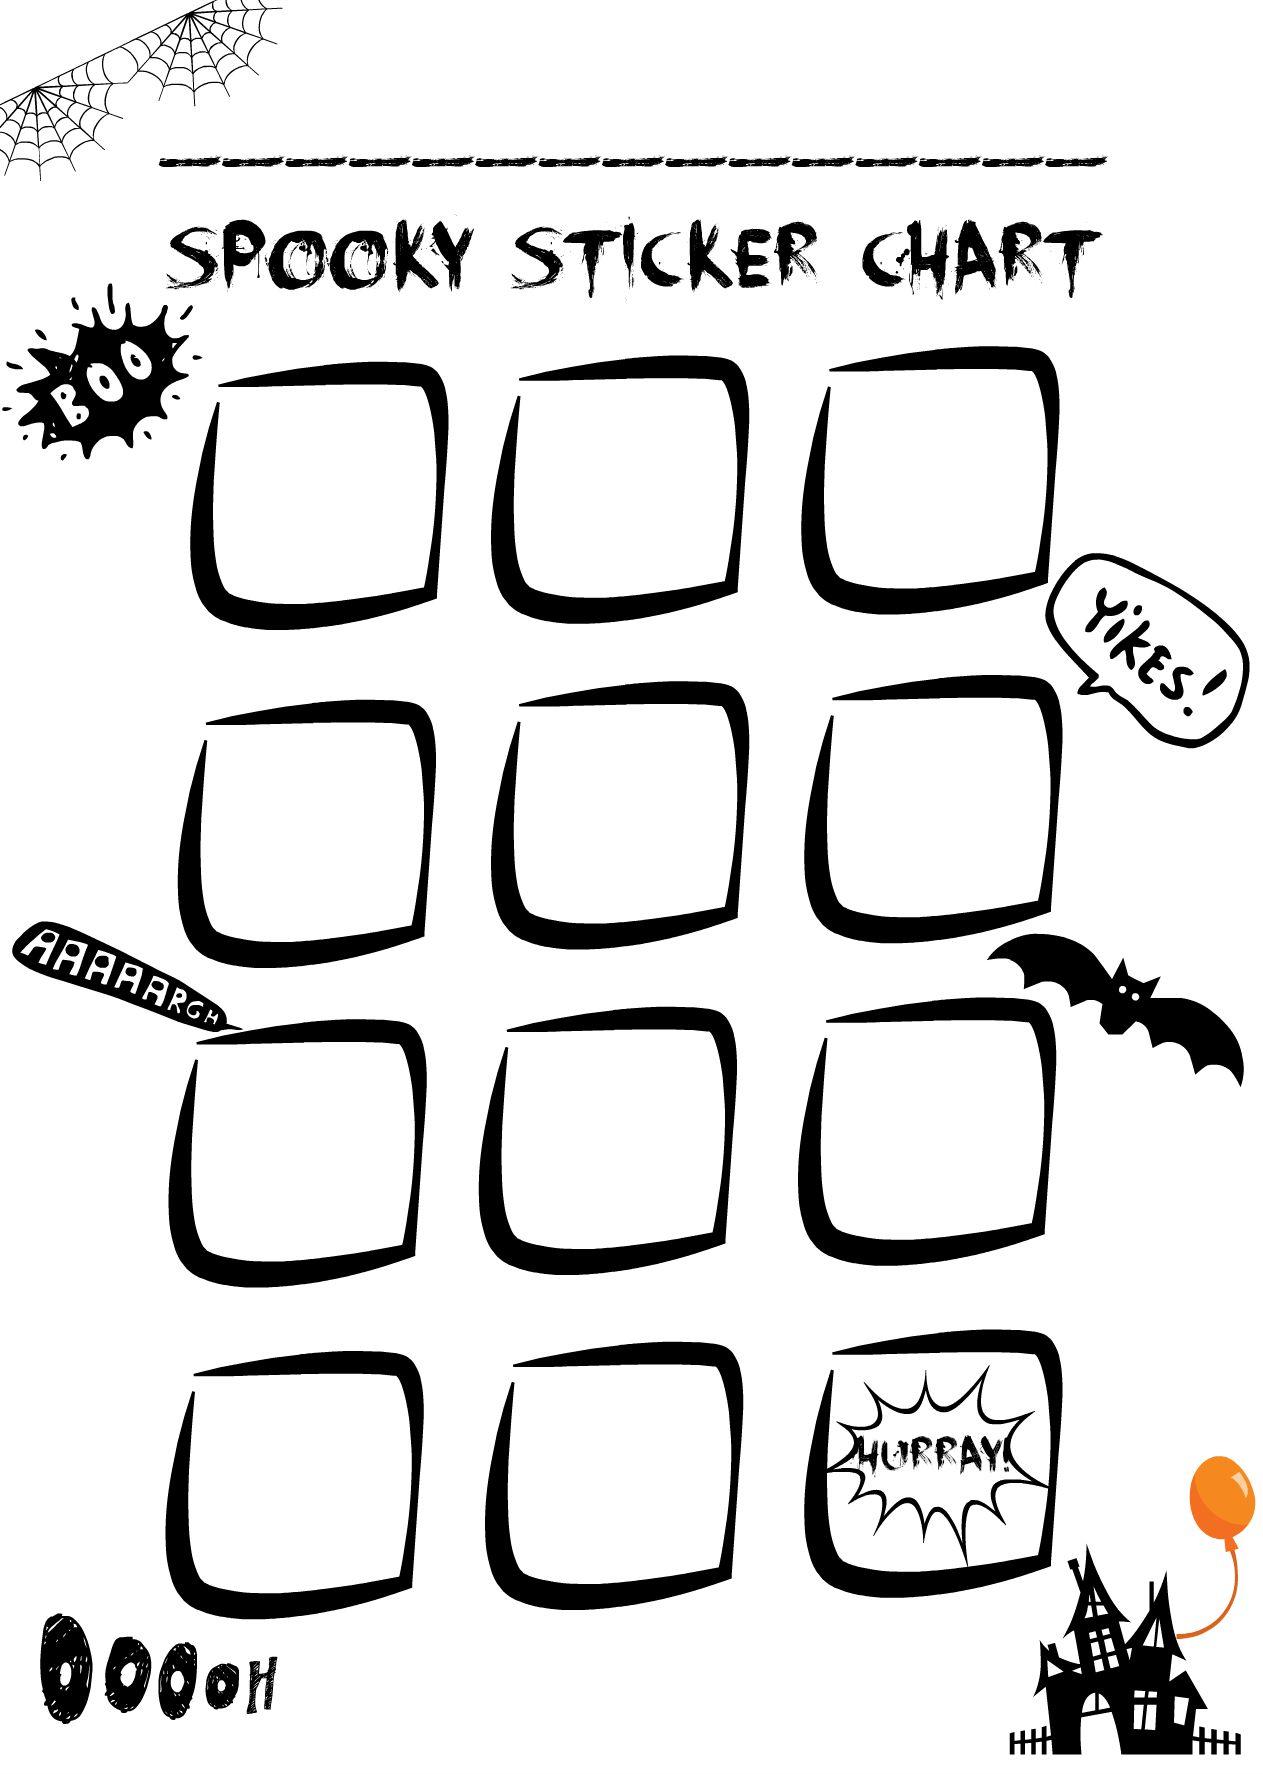 photo about Halloween Stickers Printable referred to as Sticker Chart - absolutely free Halloween printable Mums Times